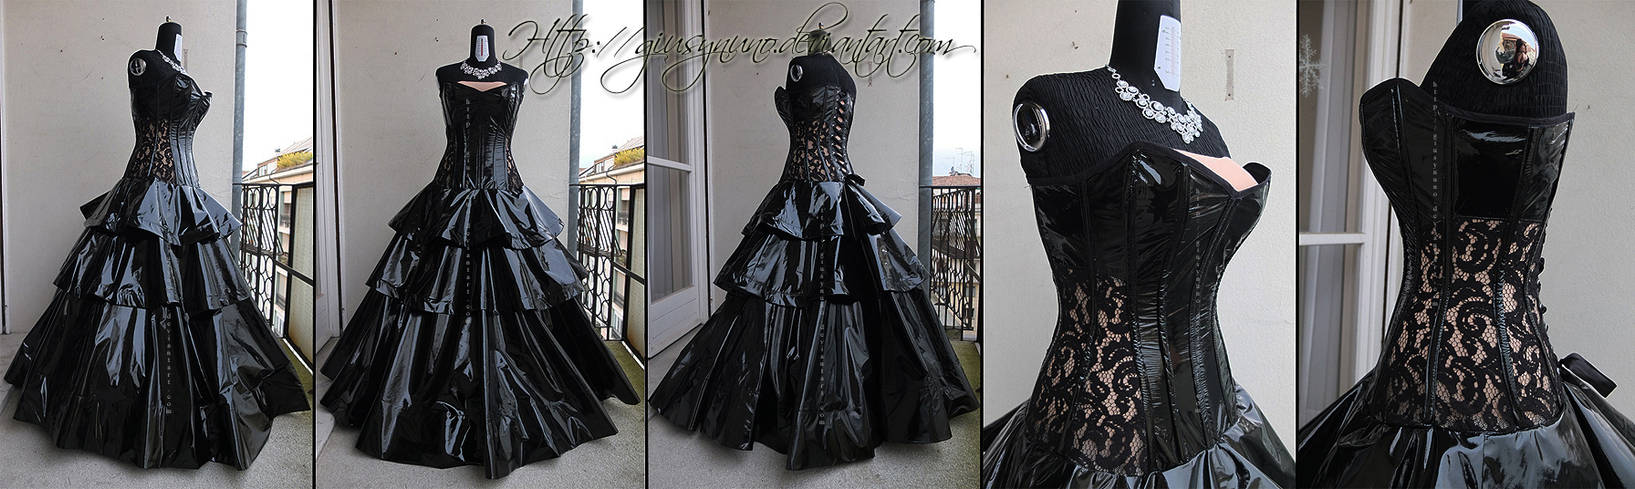 Latex and lace ballgown